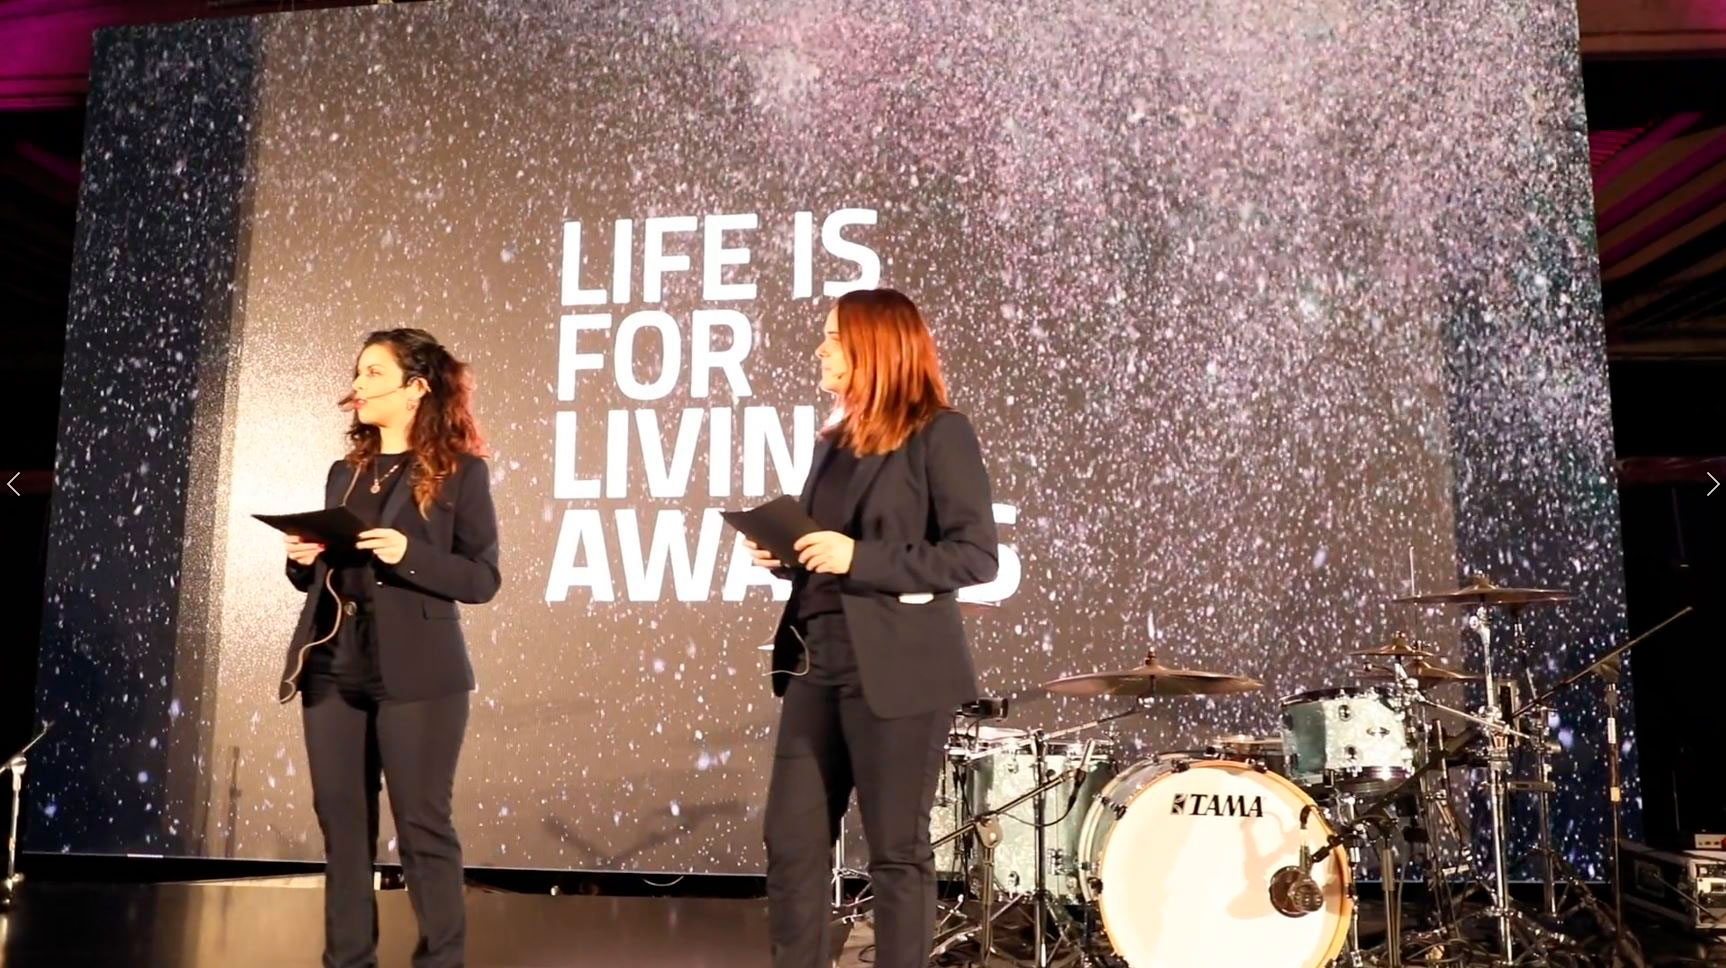 Life is For Living Awards, ein Abend voller Magie bei Living Ceramics